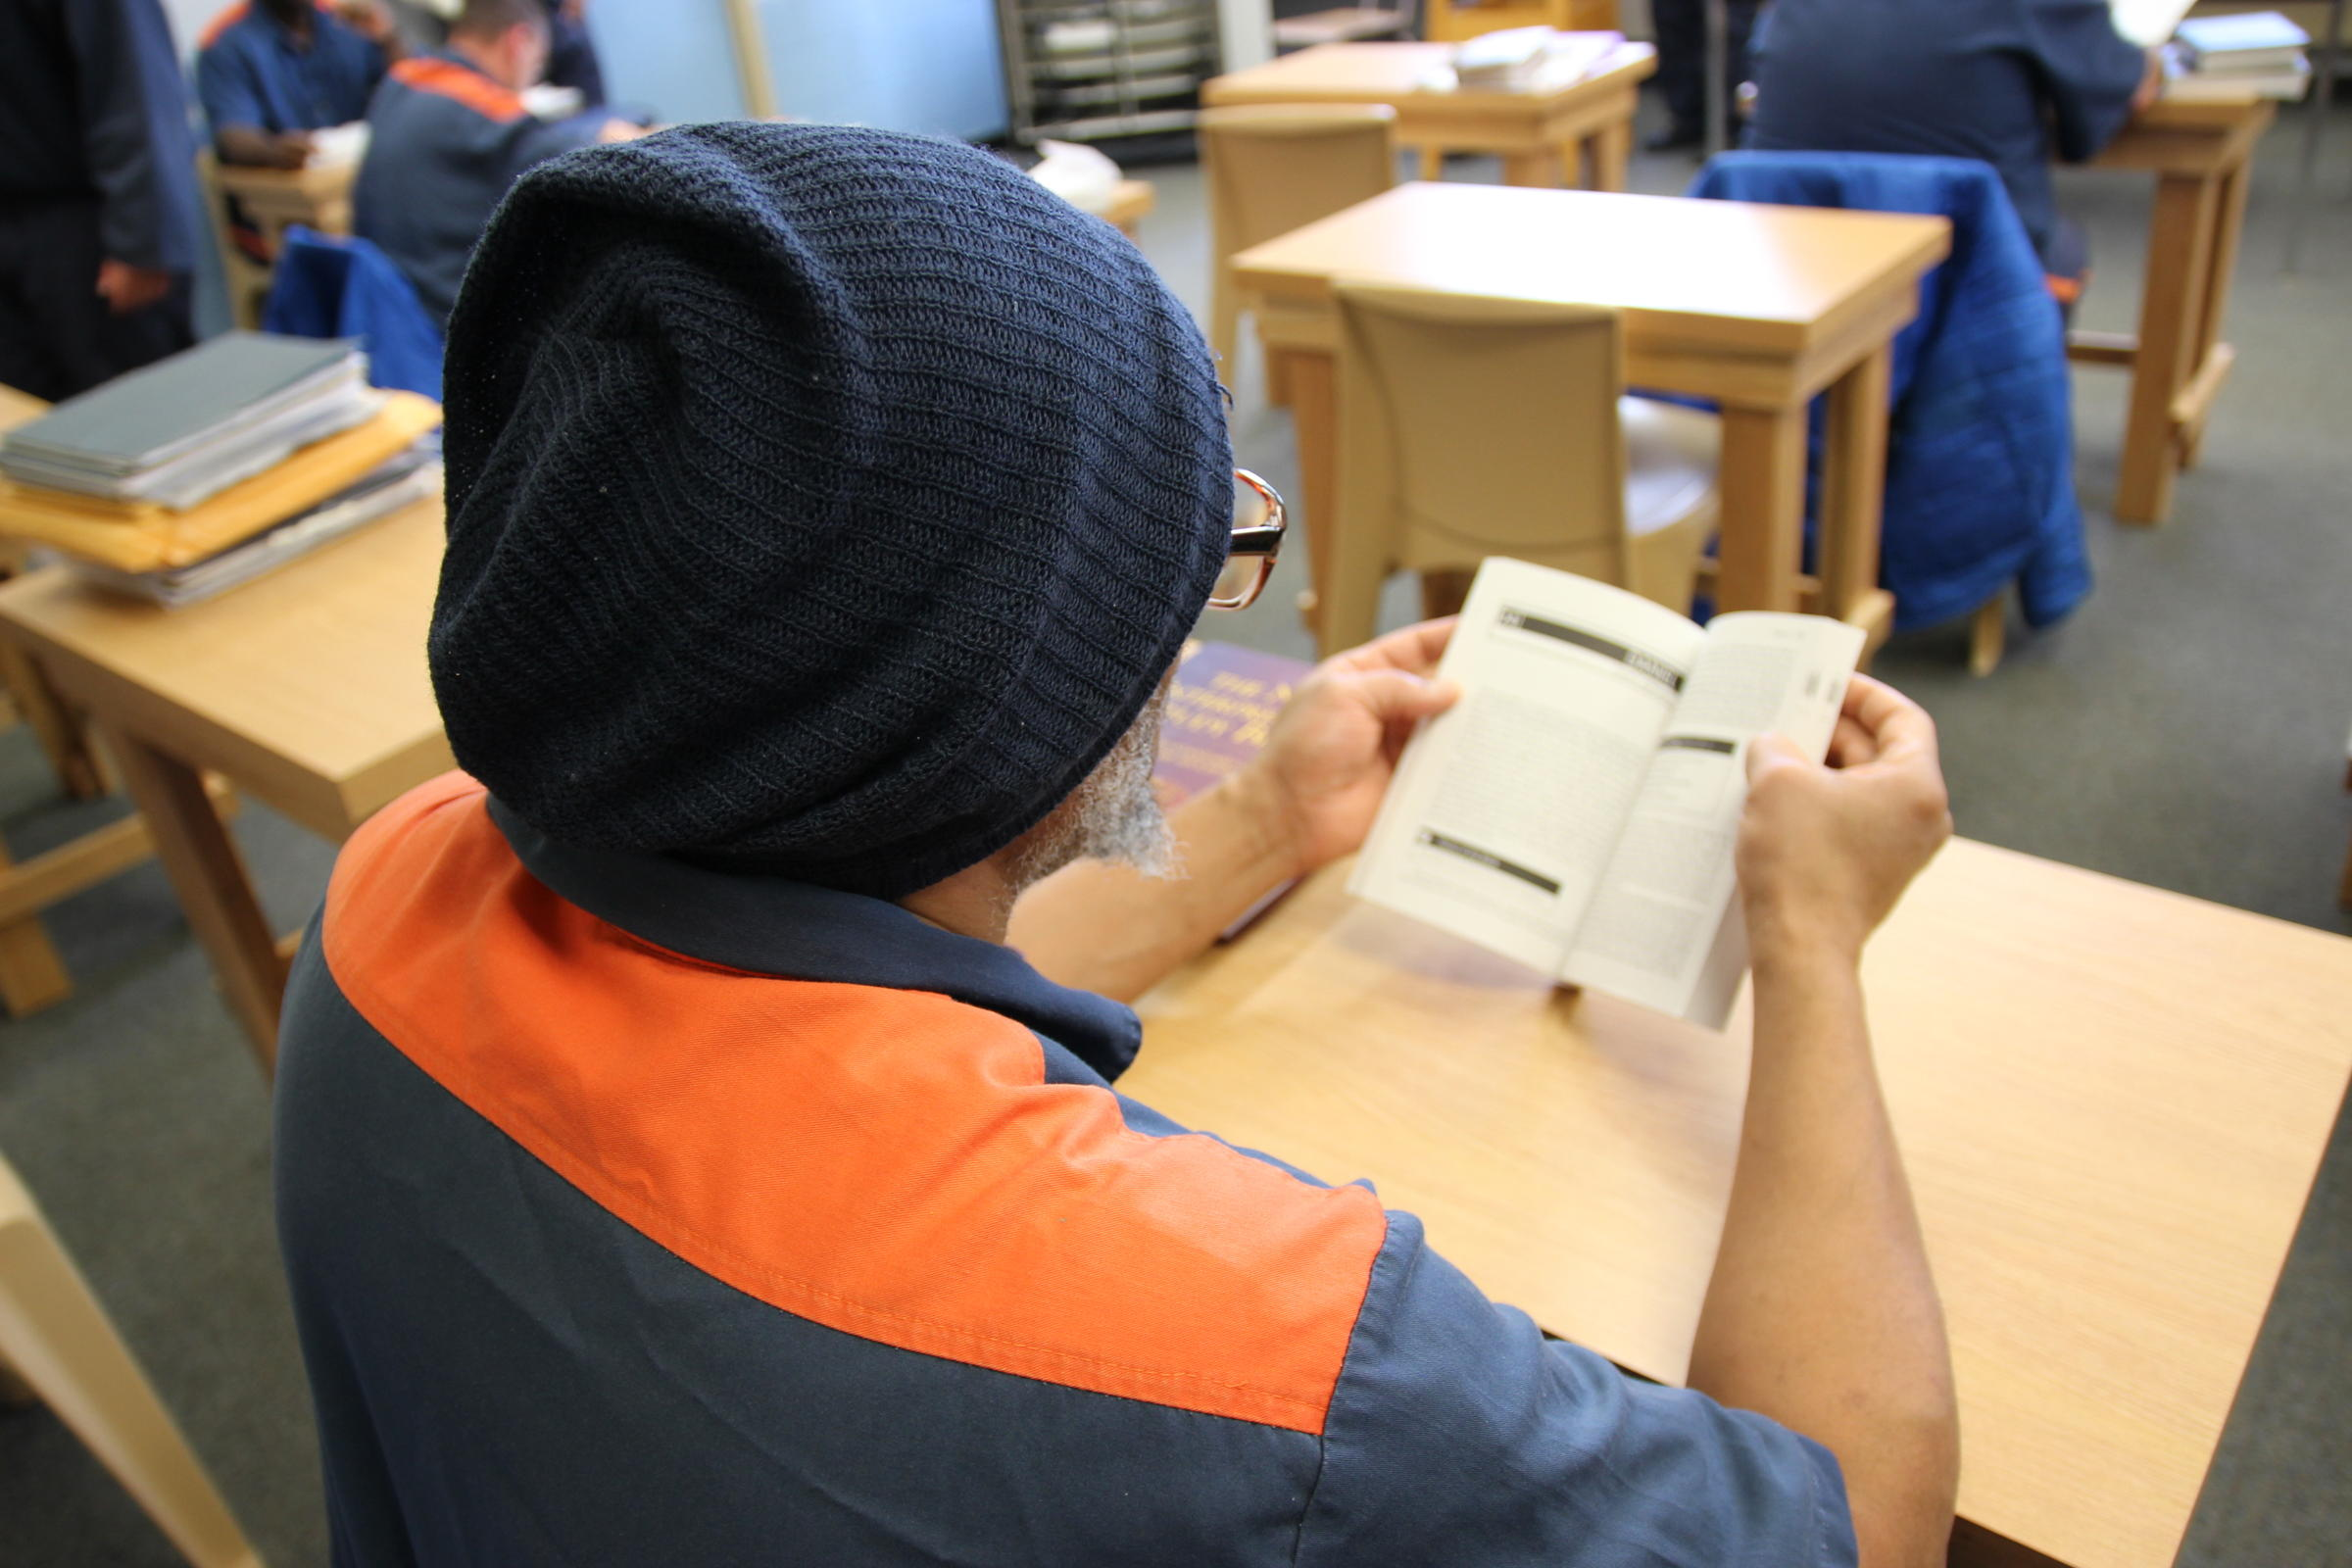 education program offers inmates chance at liberal arts degree a student inmate reads in class